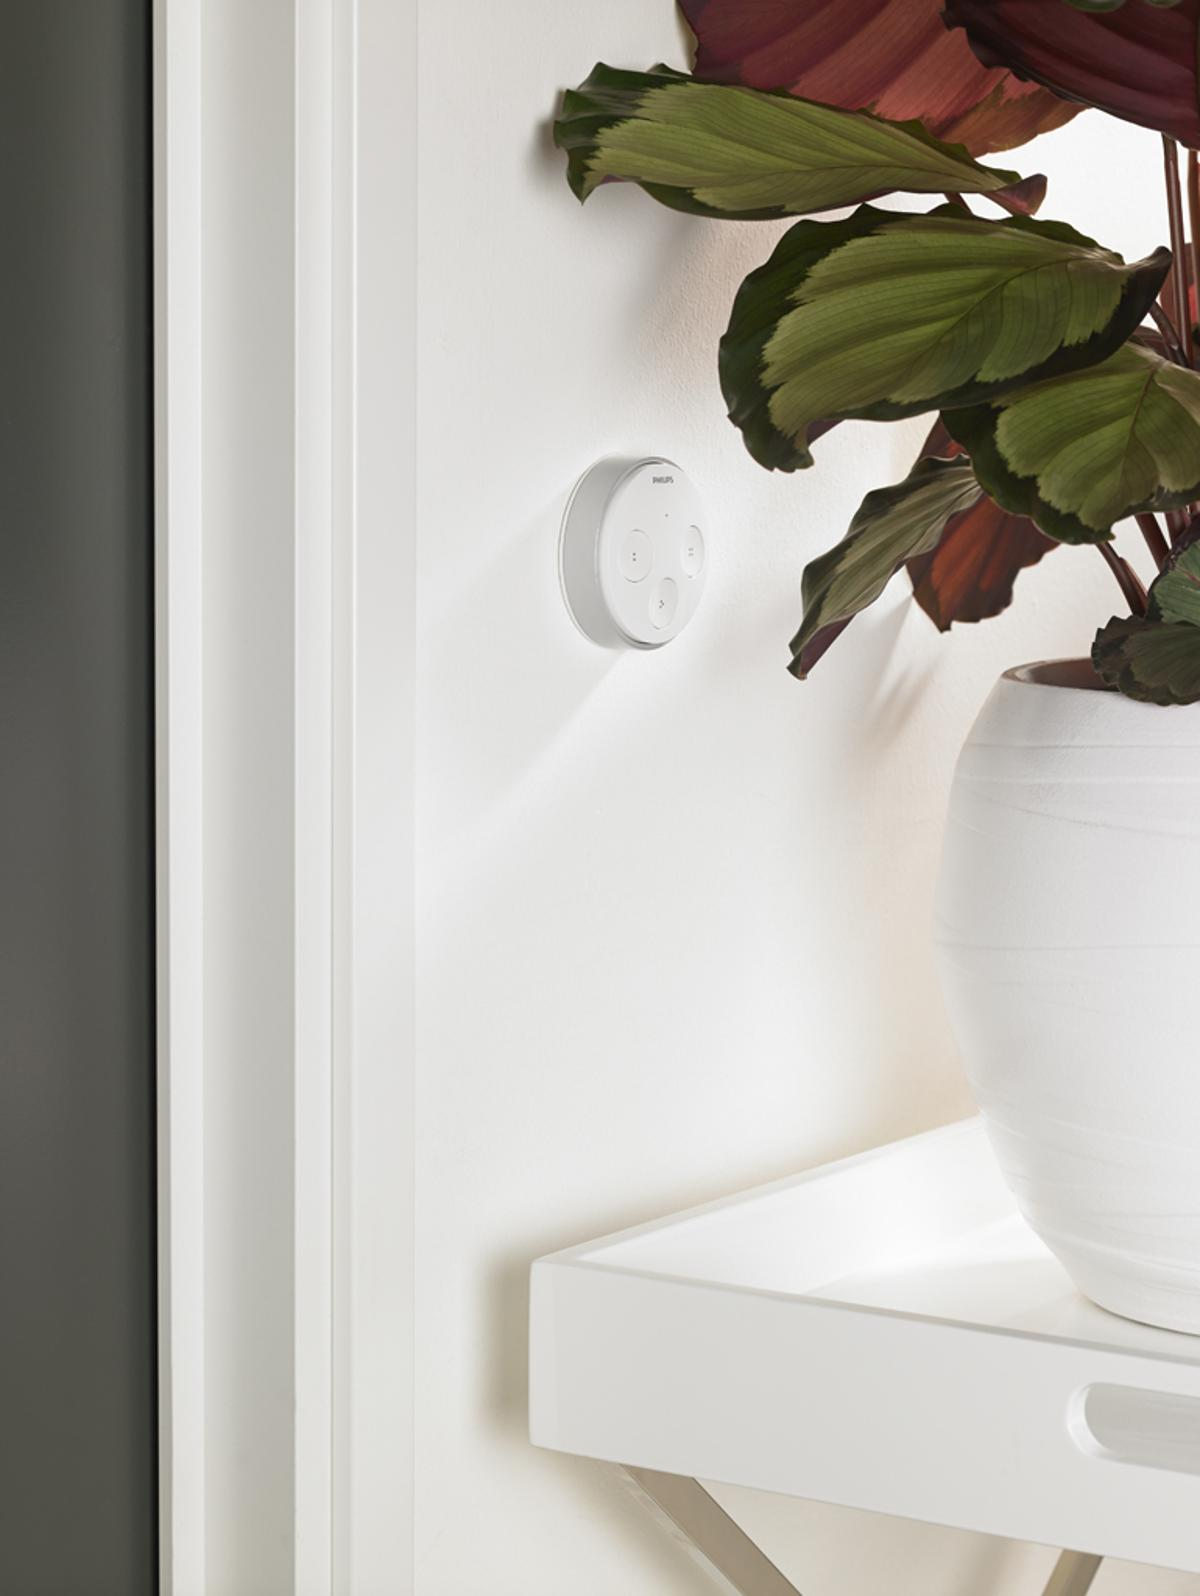 Hue tap allows users control over their hue light bulbs without using their smart device